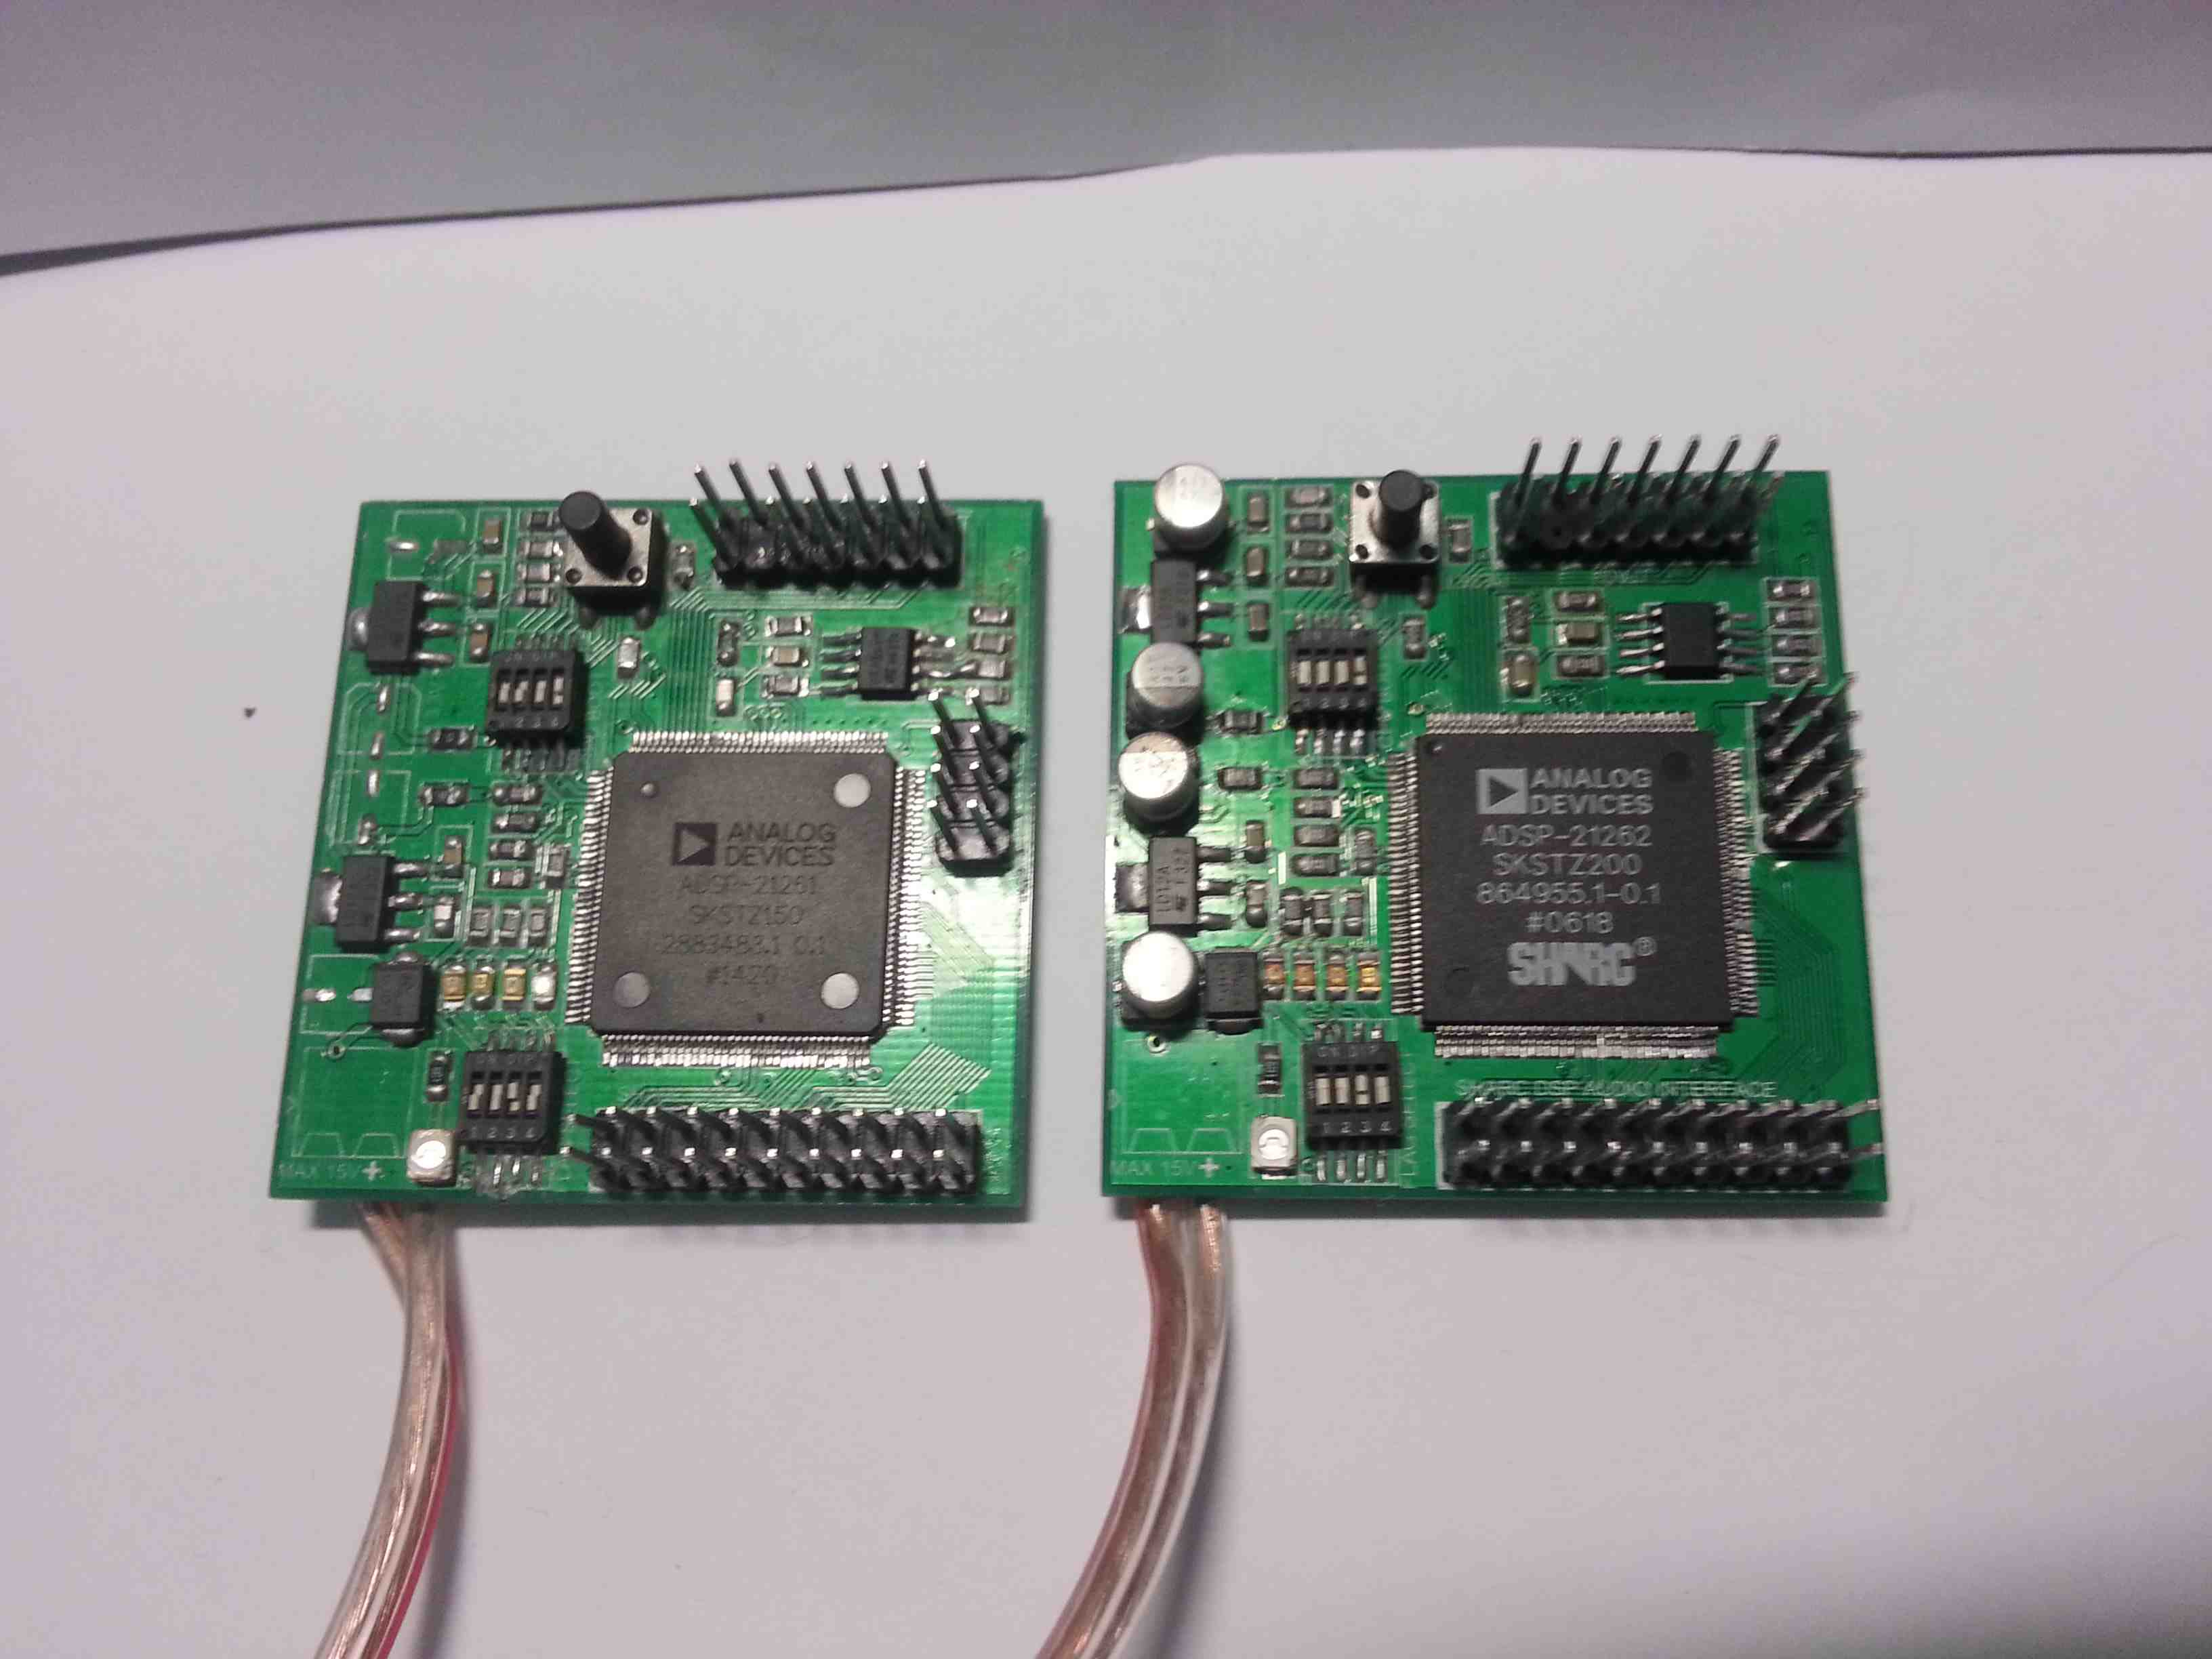 Assembled SHARC prototype DSP boards capable of processing up to 16-Channels of audio